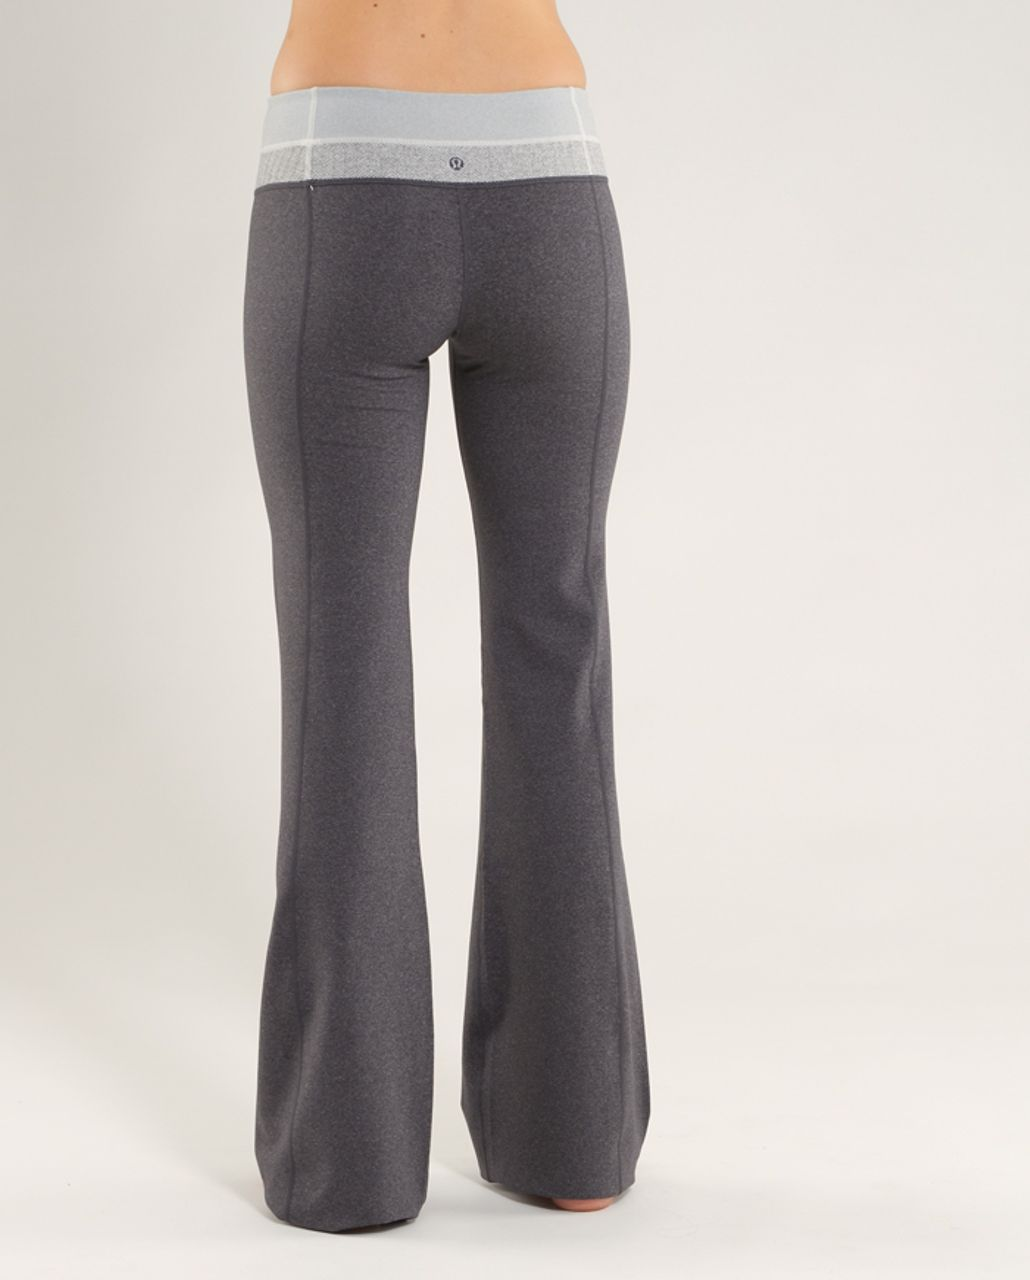 Lululemon Groove Pant (Regular) - Heathered Coal /  Ghost Blurred Grey Mini Stripe